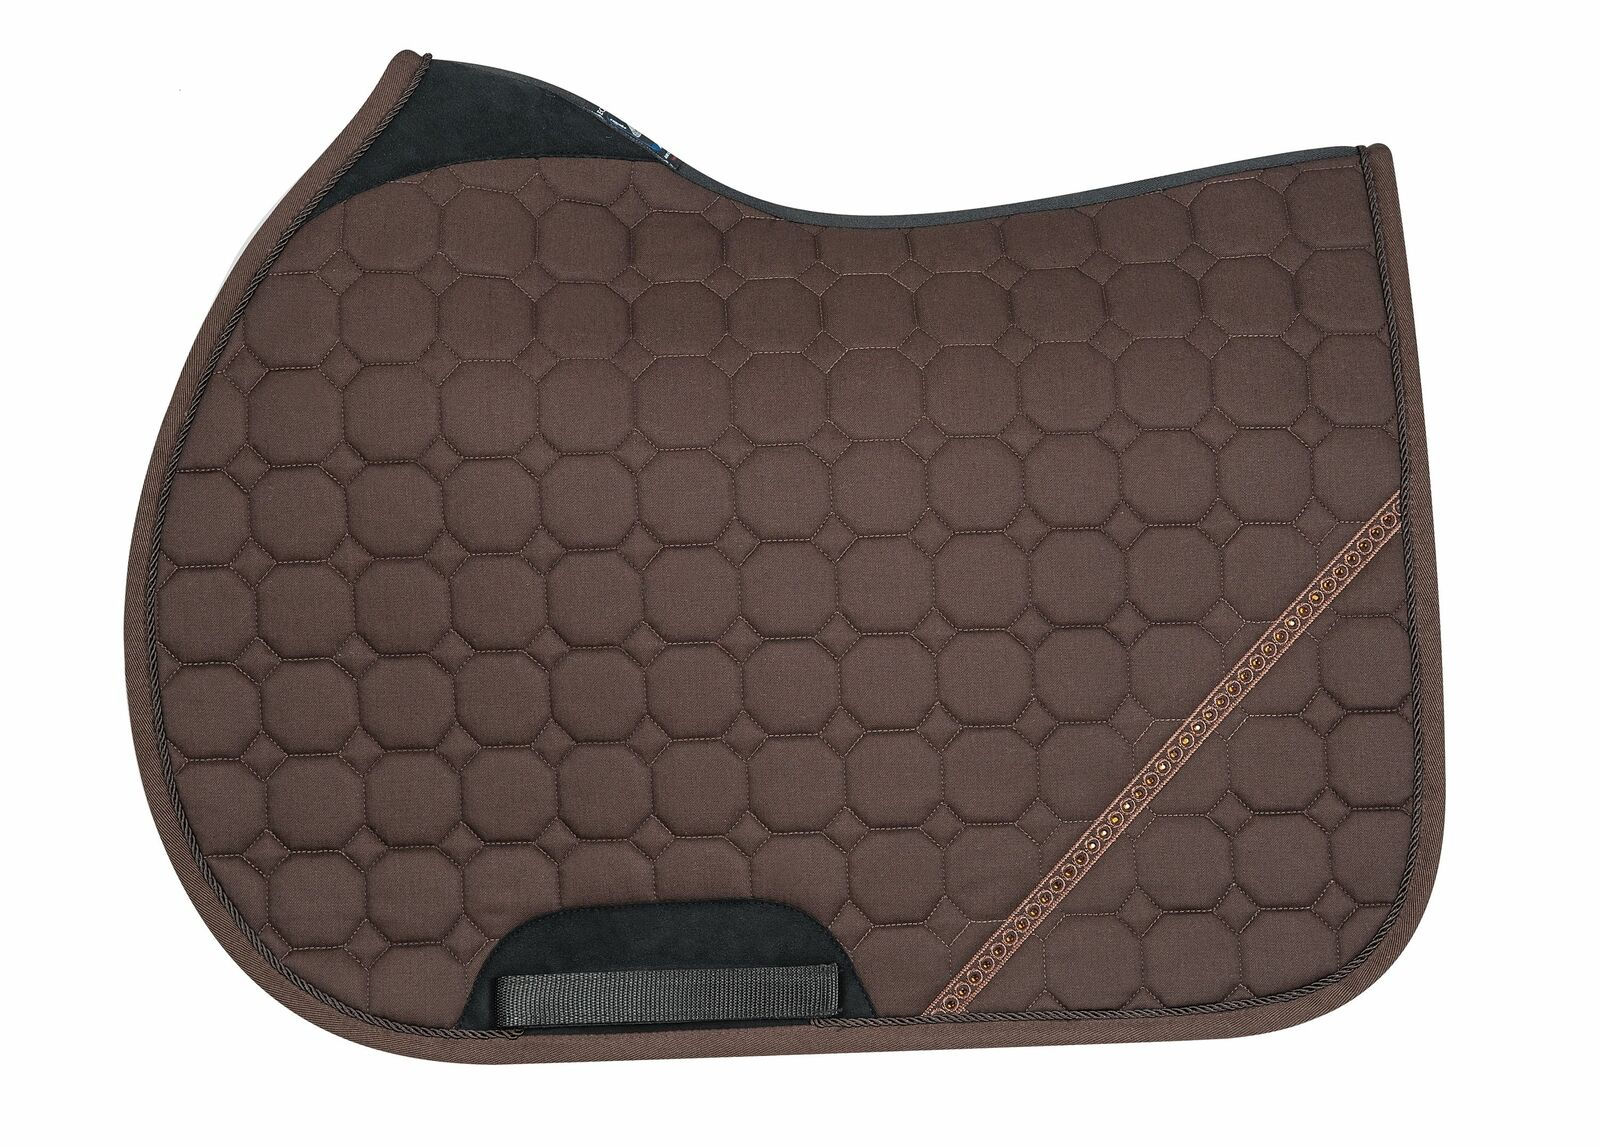 Equiline BOB HORSE OCTAGONE SADDLE CLOTH BROWN SS 2019